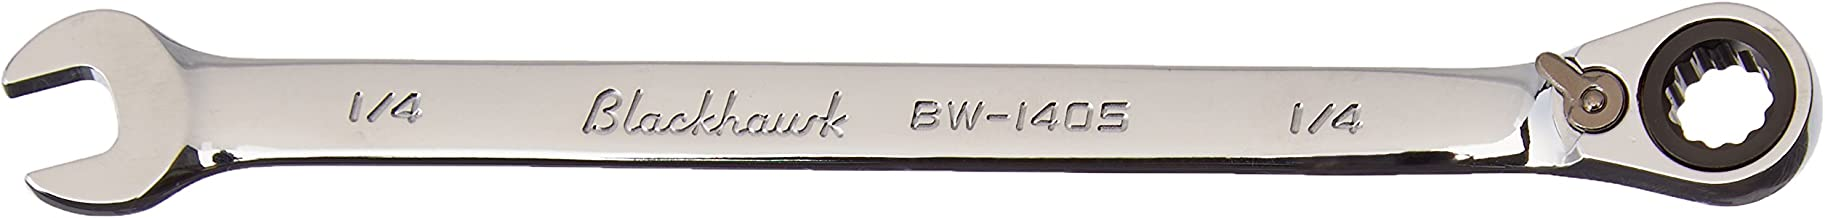 Blackhawk By Proto BW-1405 12 Point 1/4-Inch Full Polish Combination Reversible Ratcheting Wrench